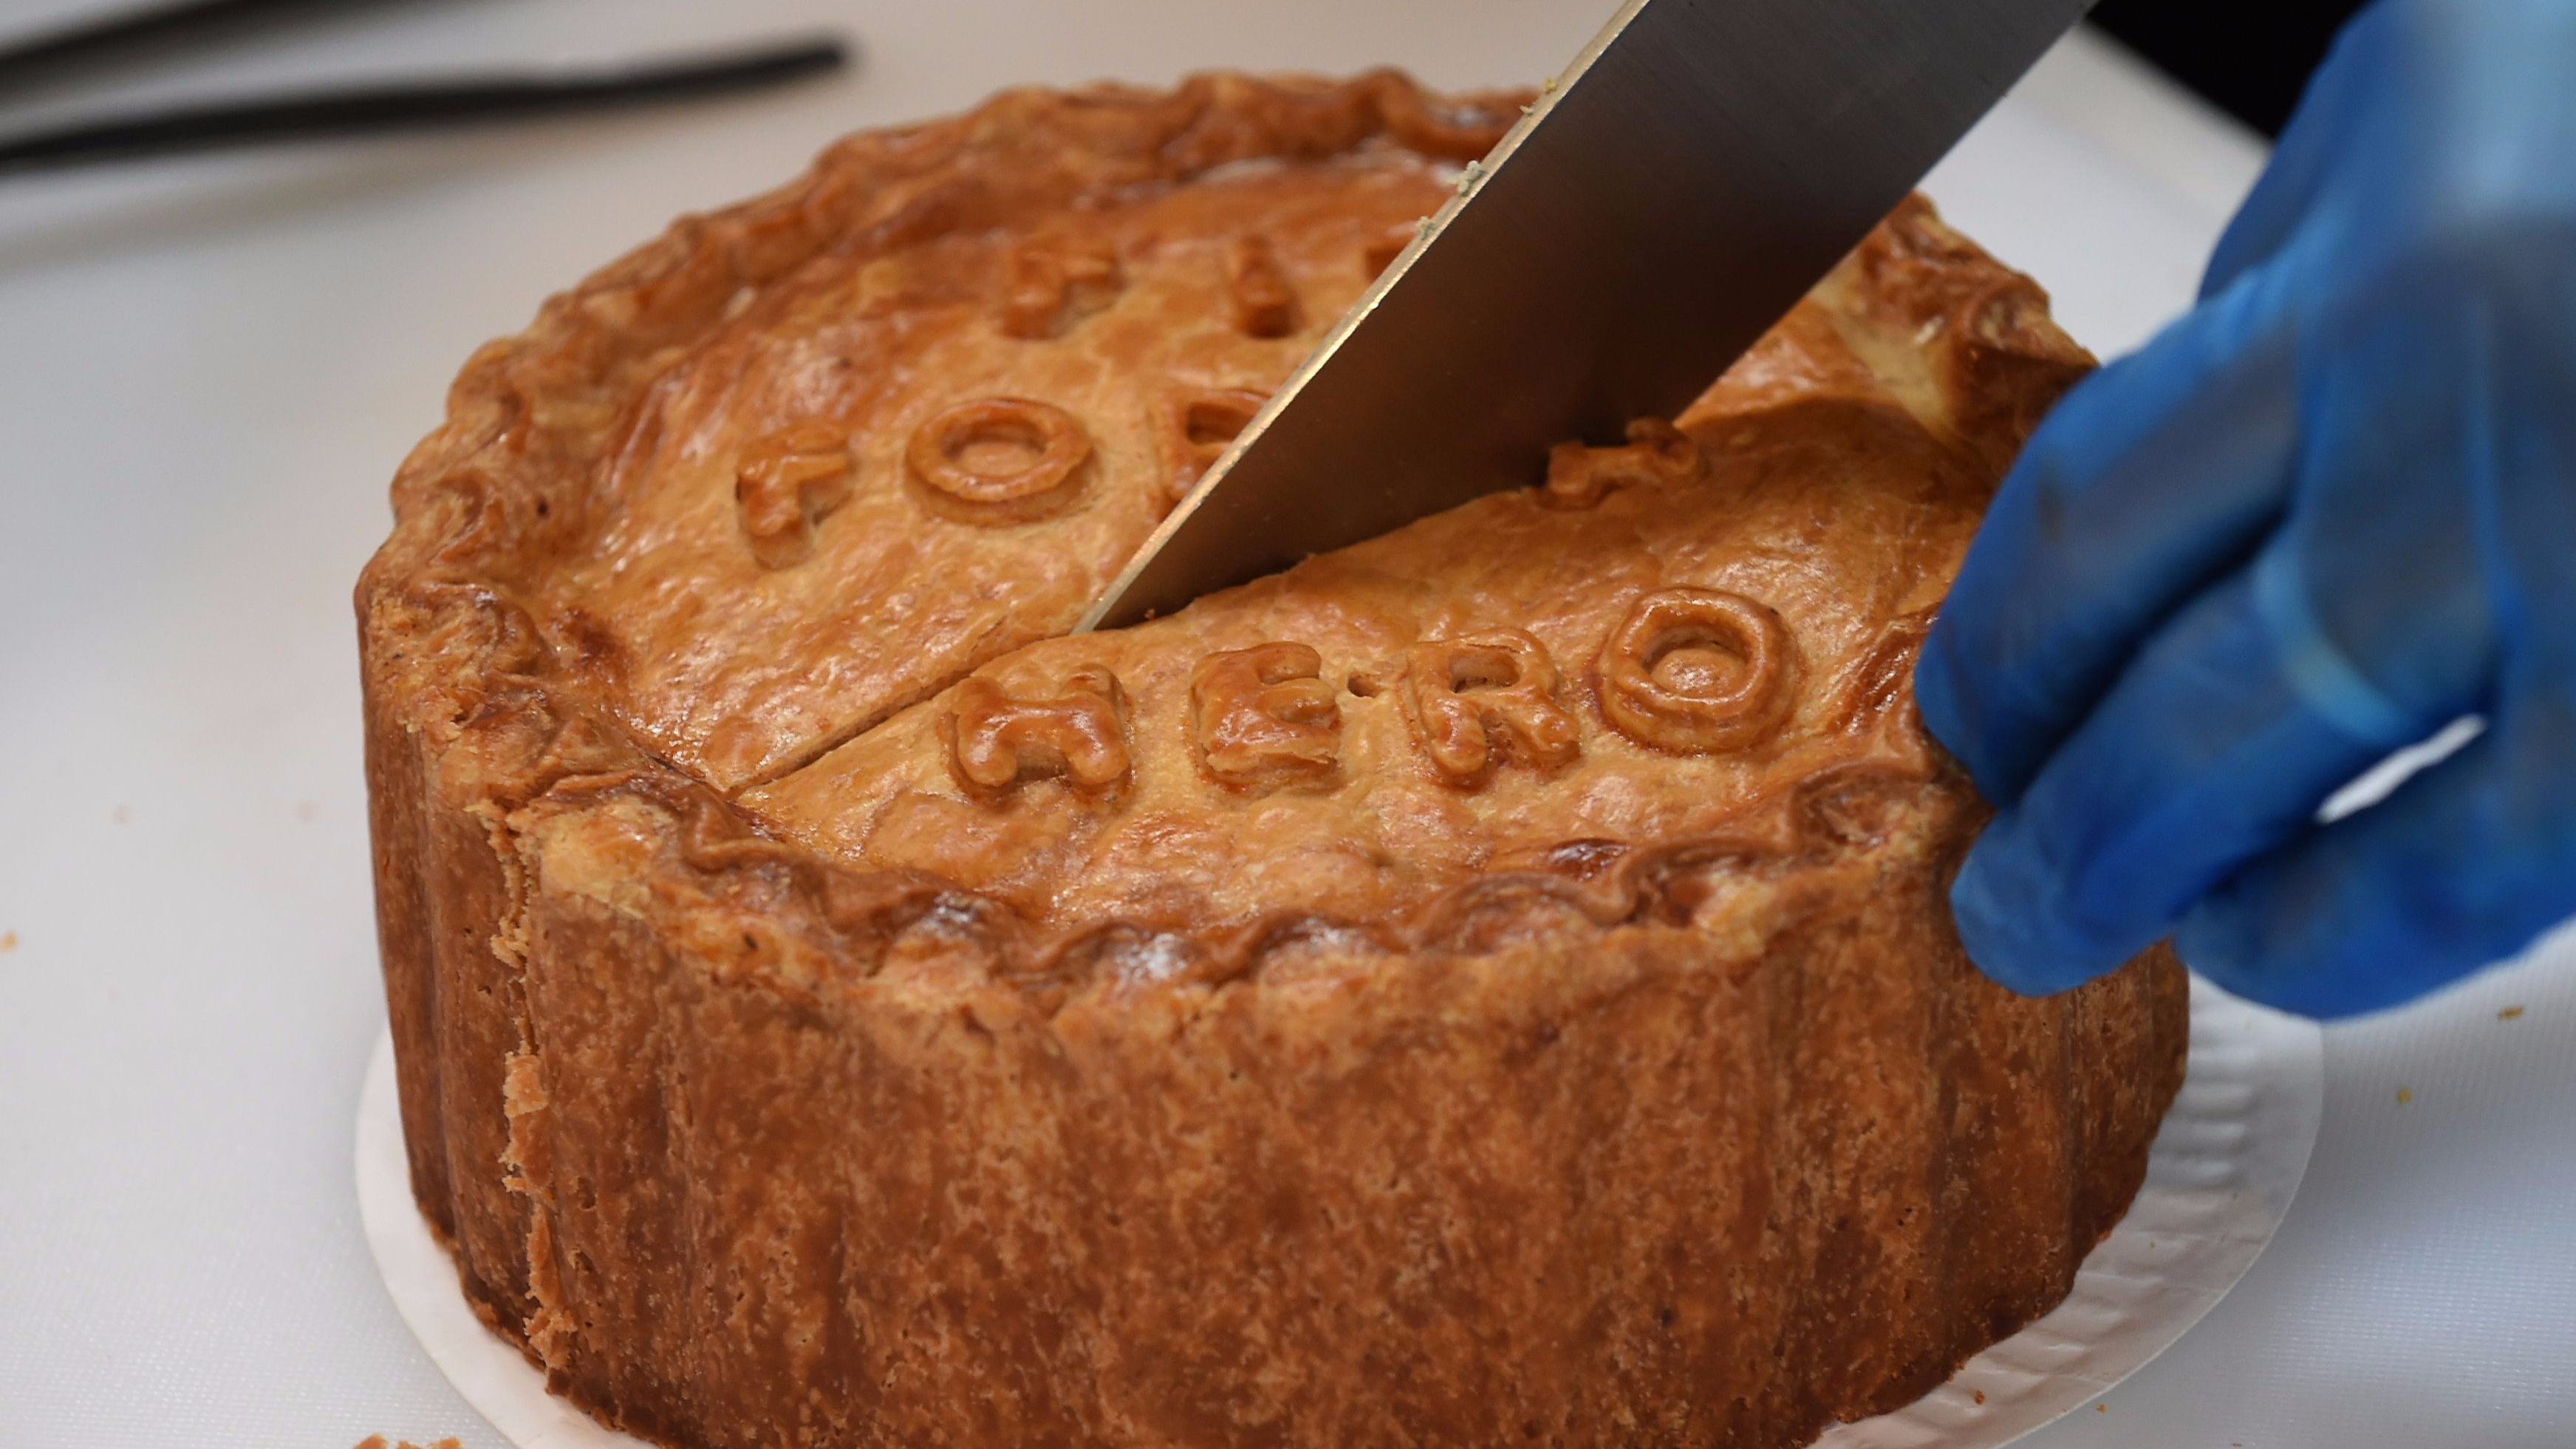 The Pie London Voted As Its Favourite Is Of Course Totally, Unapologetically, Horrendous